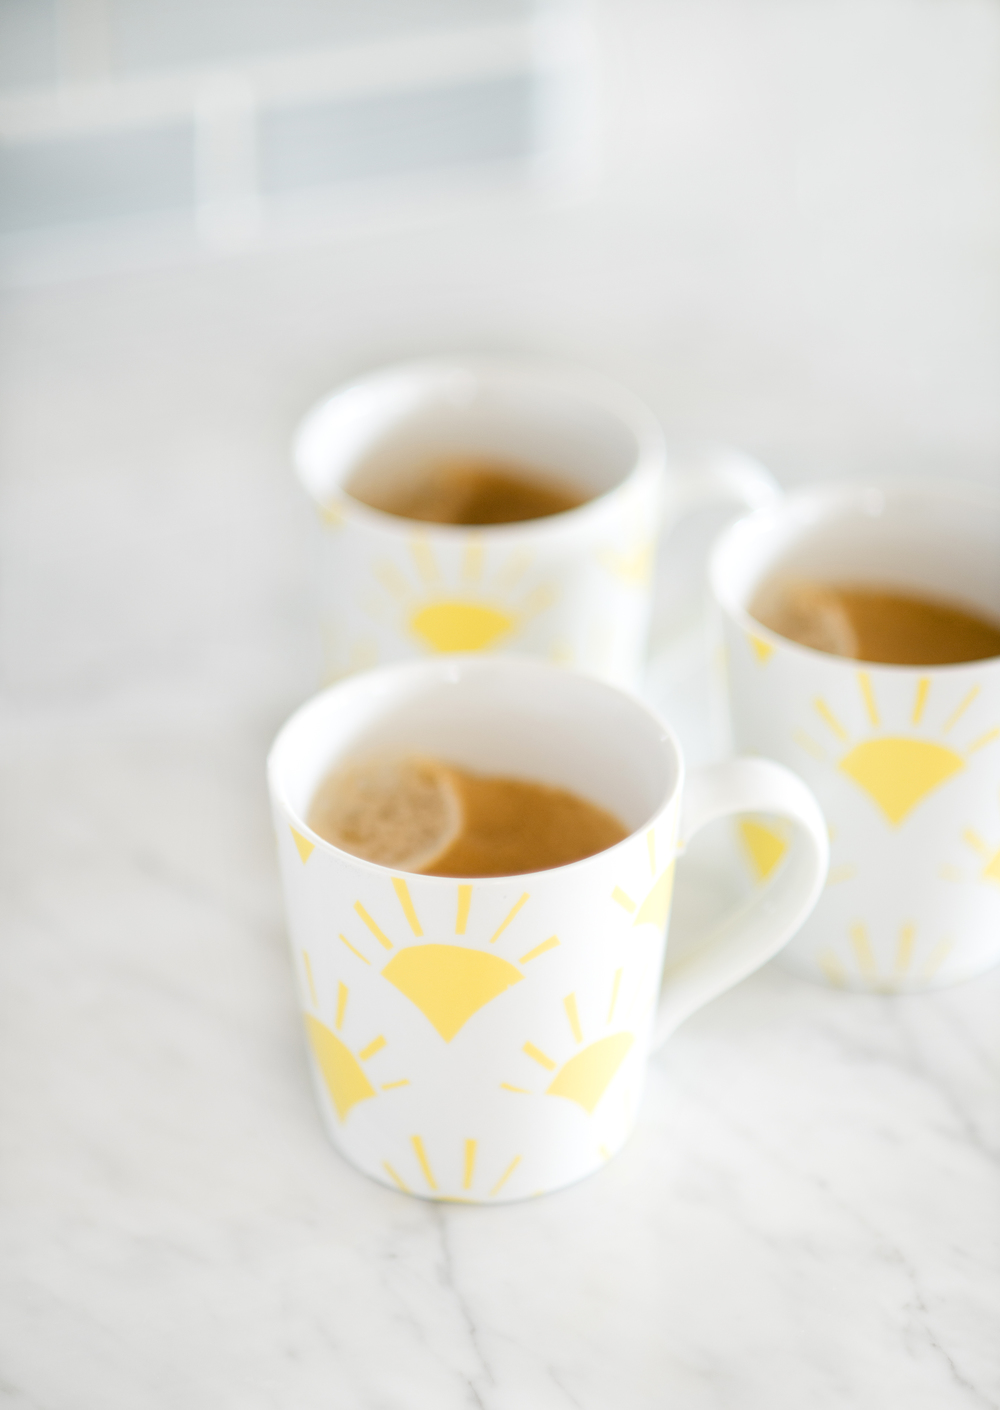 Sun-kissed Spring Breakfast~ Morning pick me up in Sunrise mugs from Crate & Barrel. Head over to the blog to see details from My Splendid Living and Crate & Barrel's collaboration.